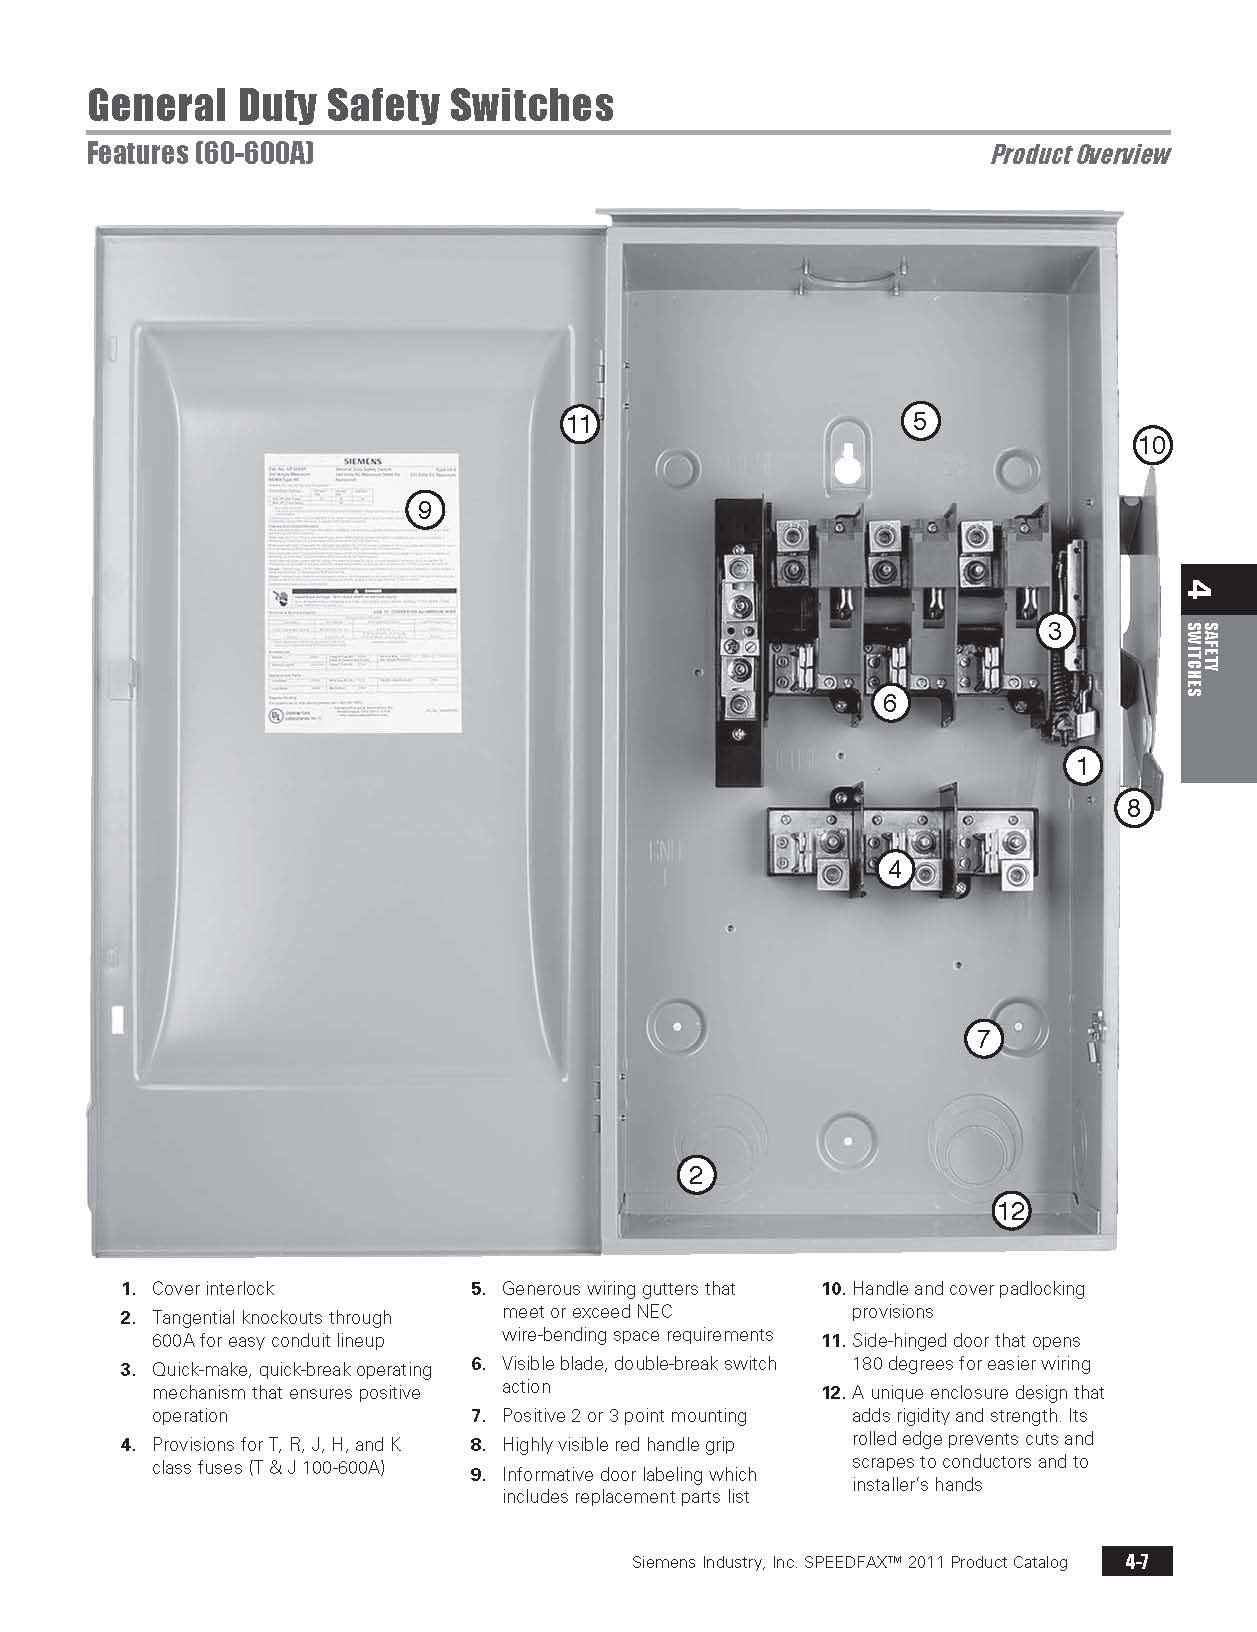 Siemens Gf322n 60 Amp 3 Pole 240 Volt 4 Wire Fused General Duty Diagram For Volts Indoor Rated